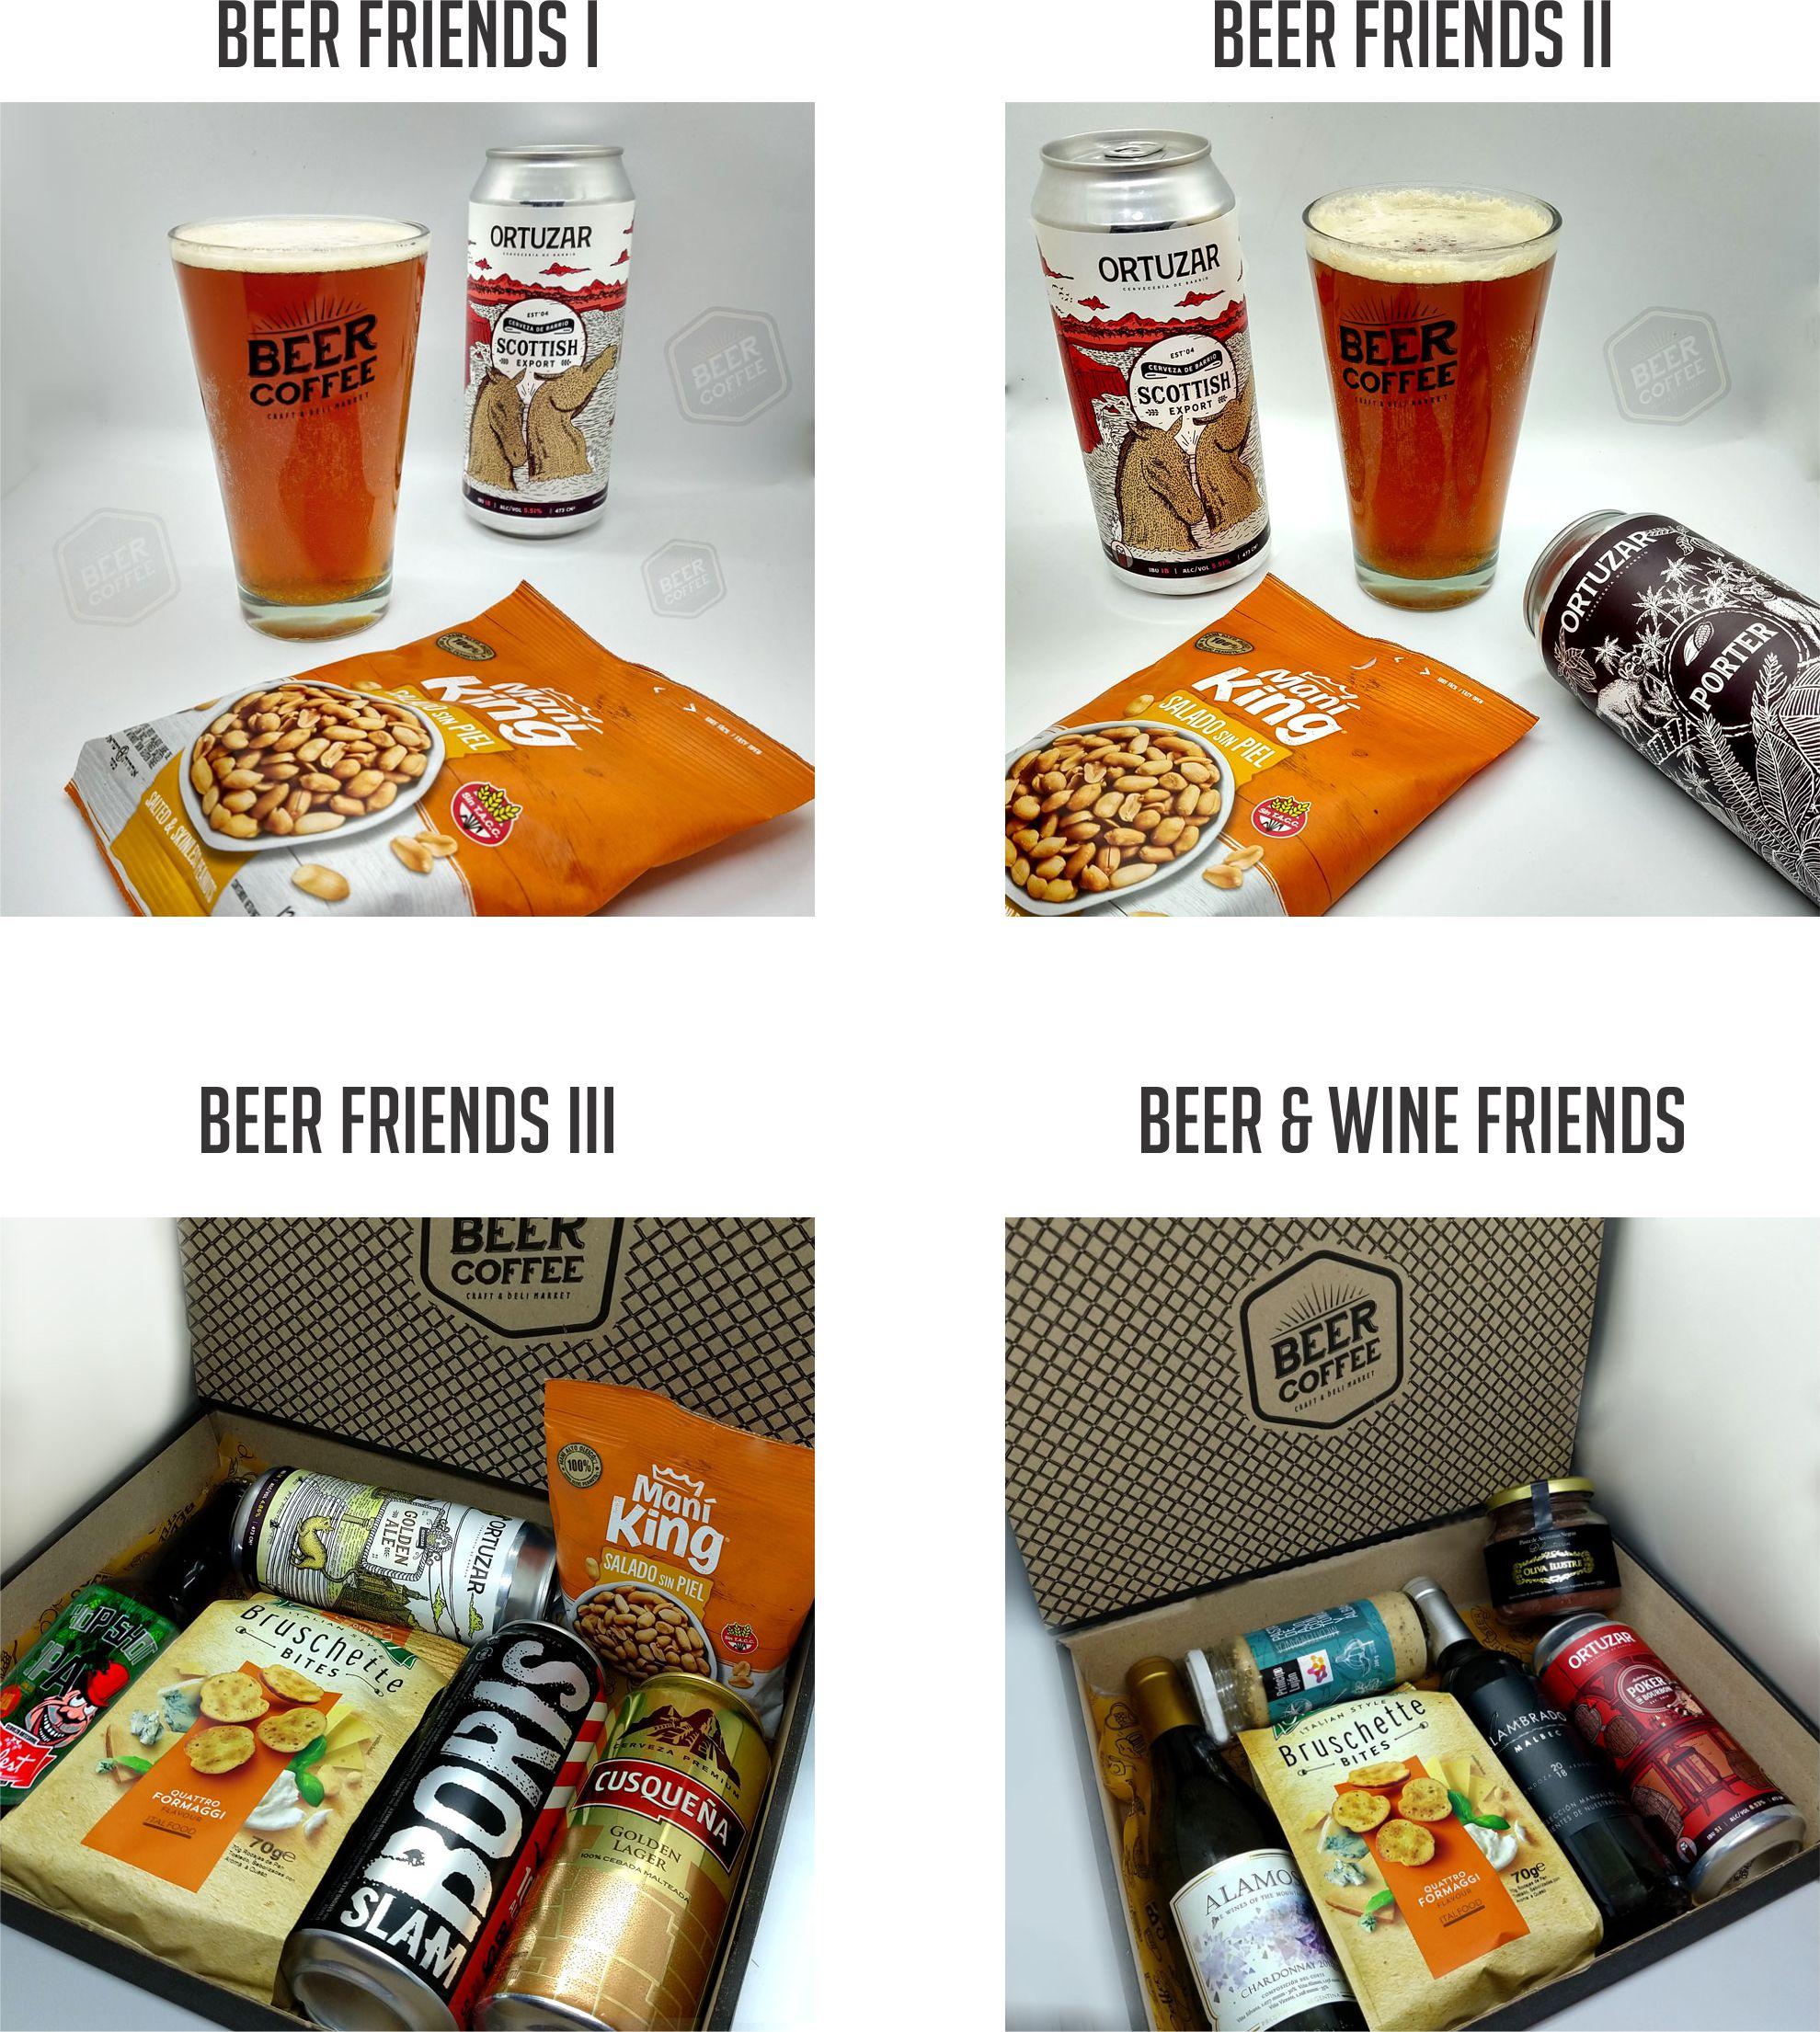 BEER FRINEDS